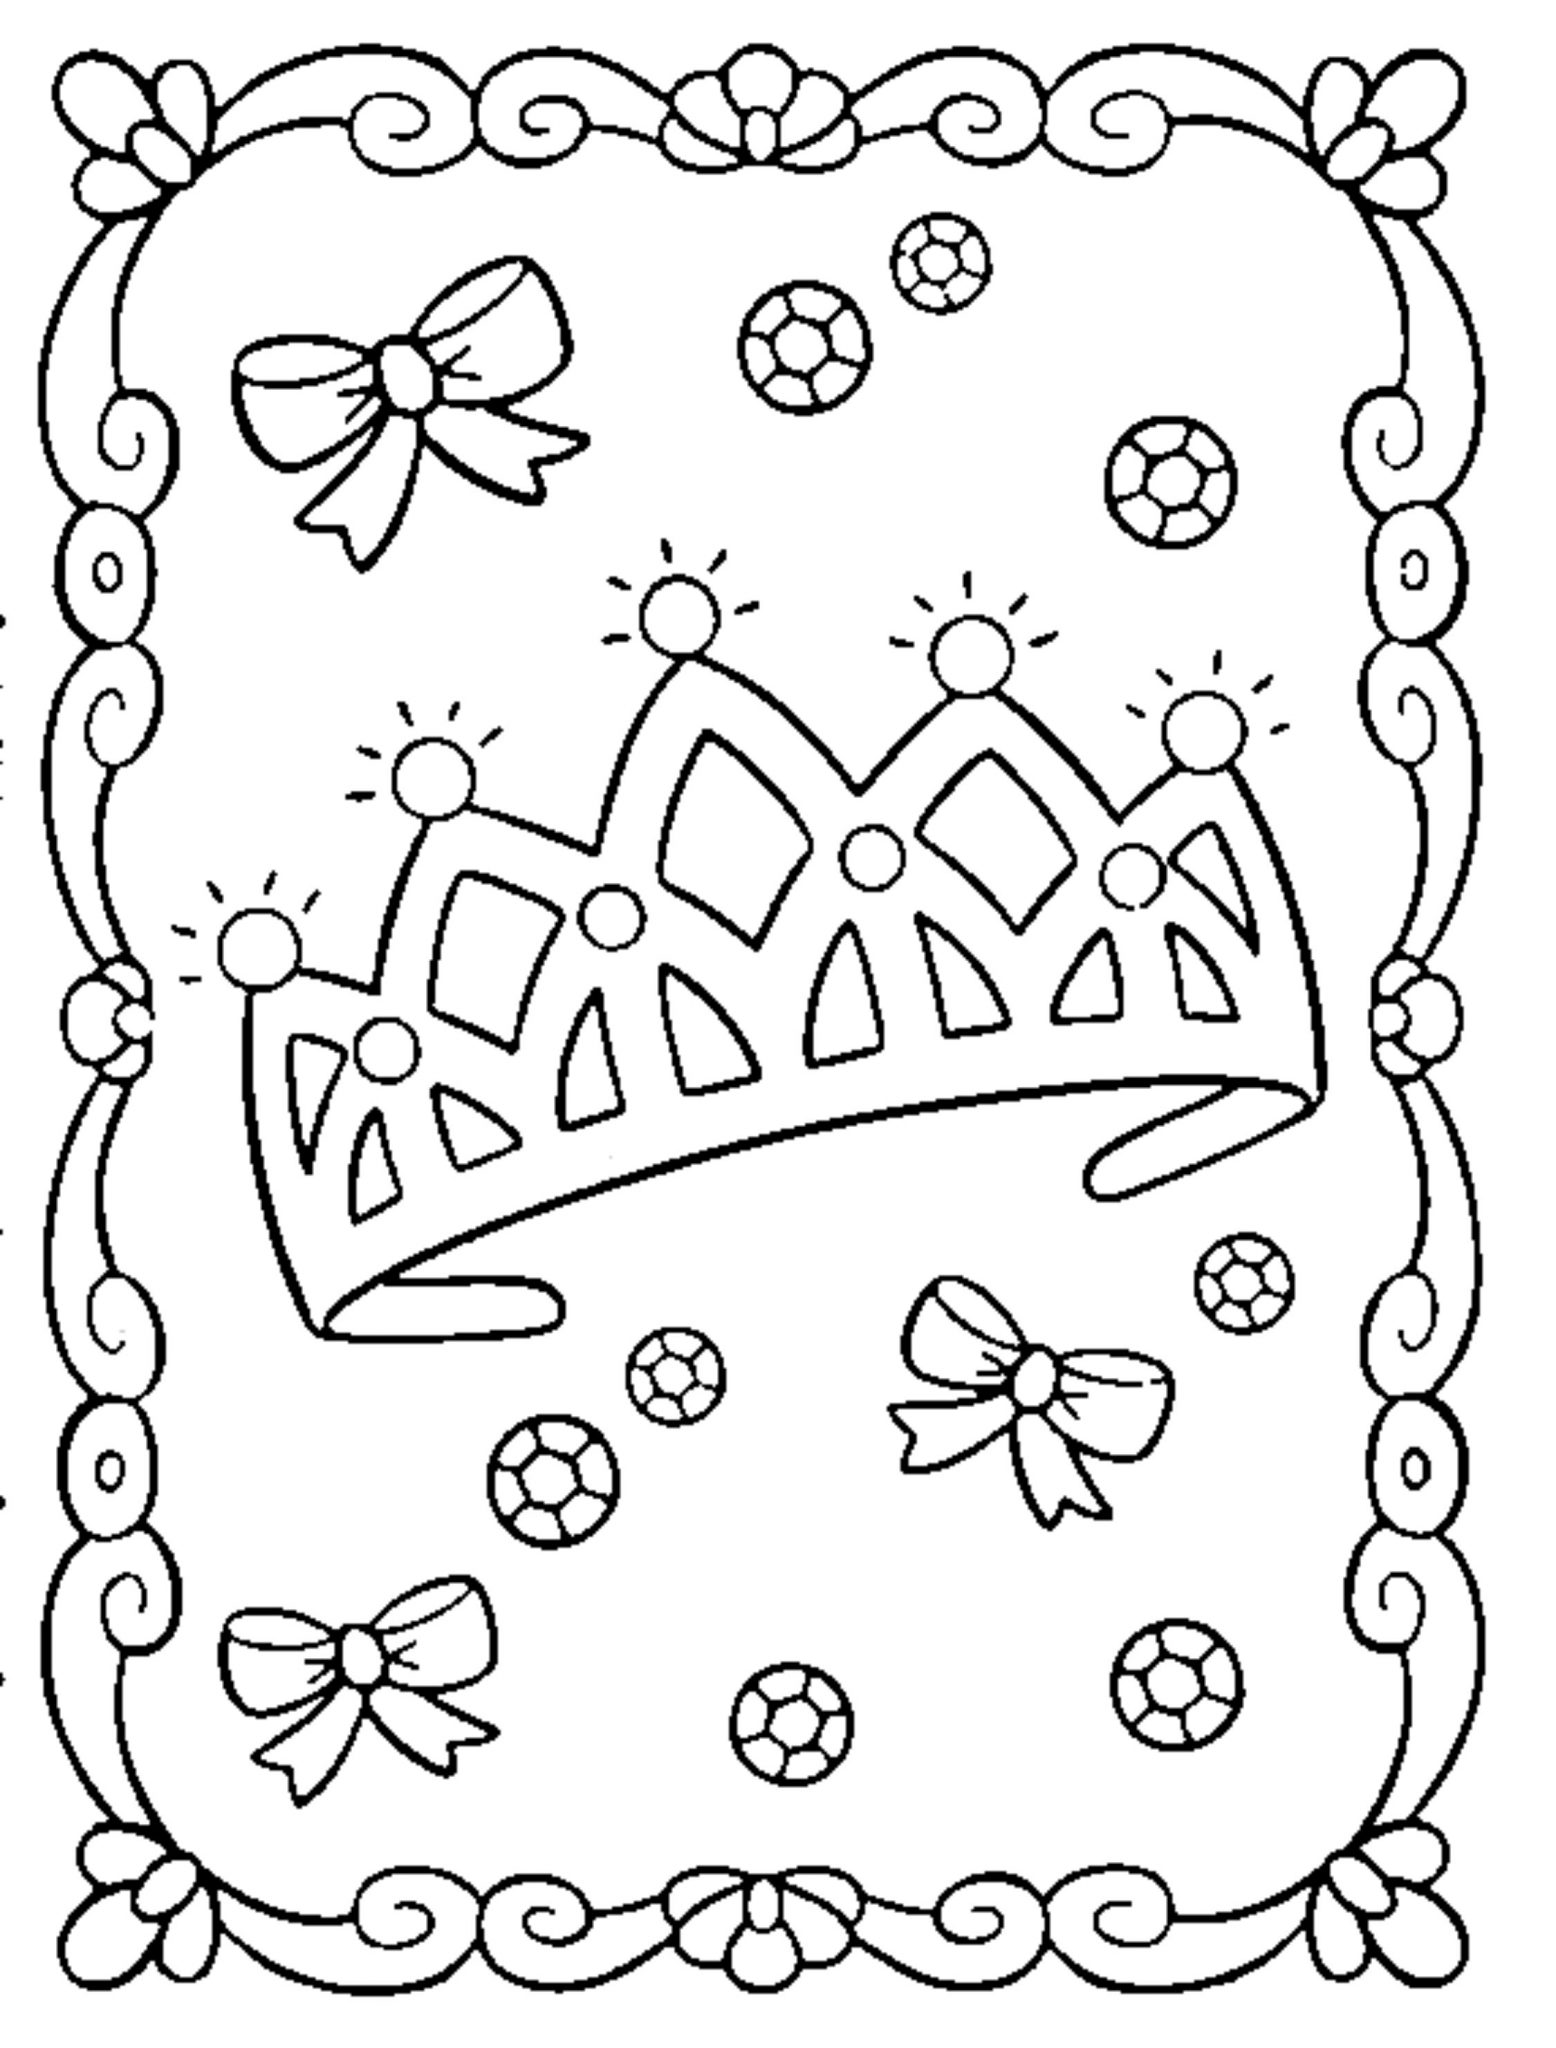 shop related products - Princess Coloring Pages Online